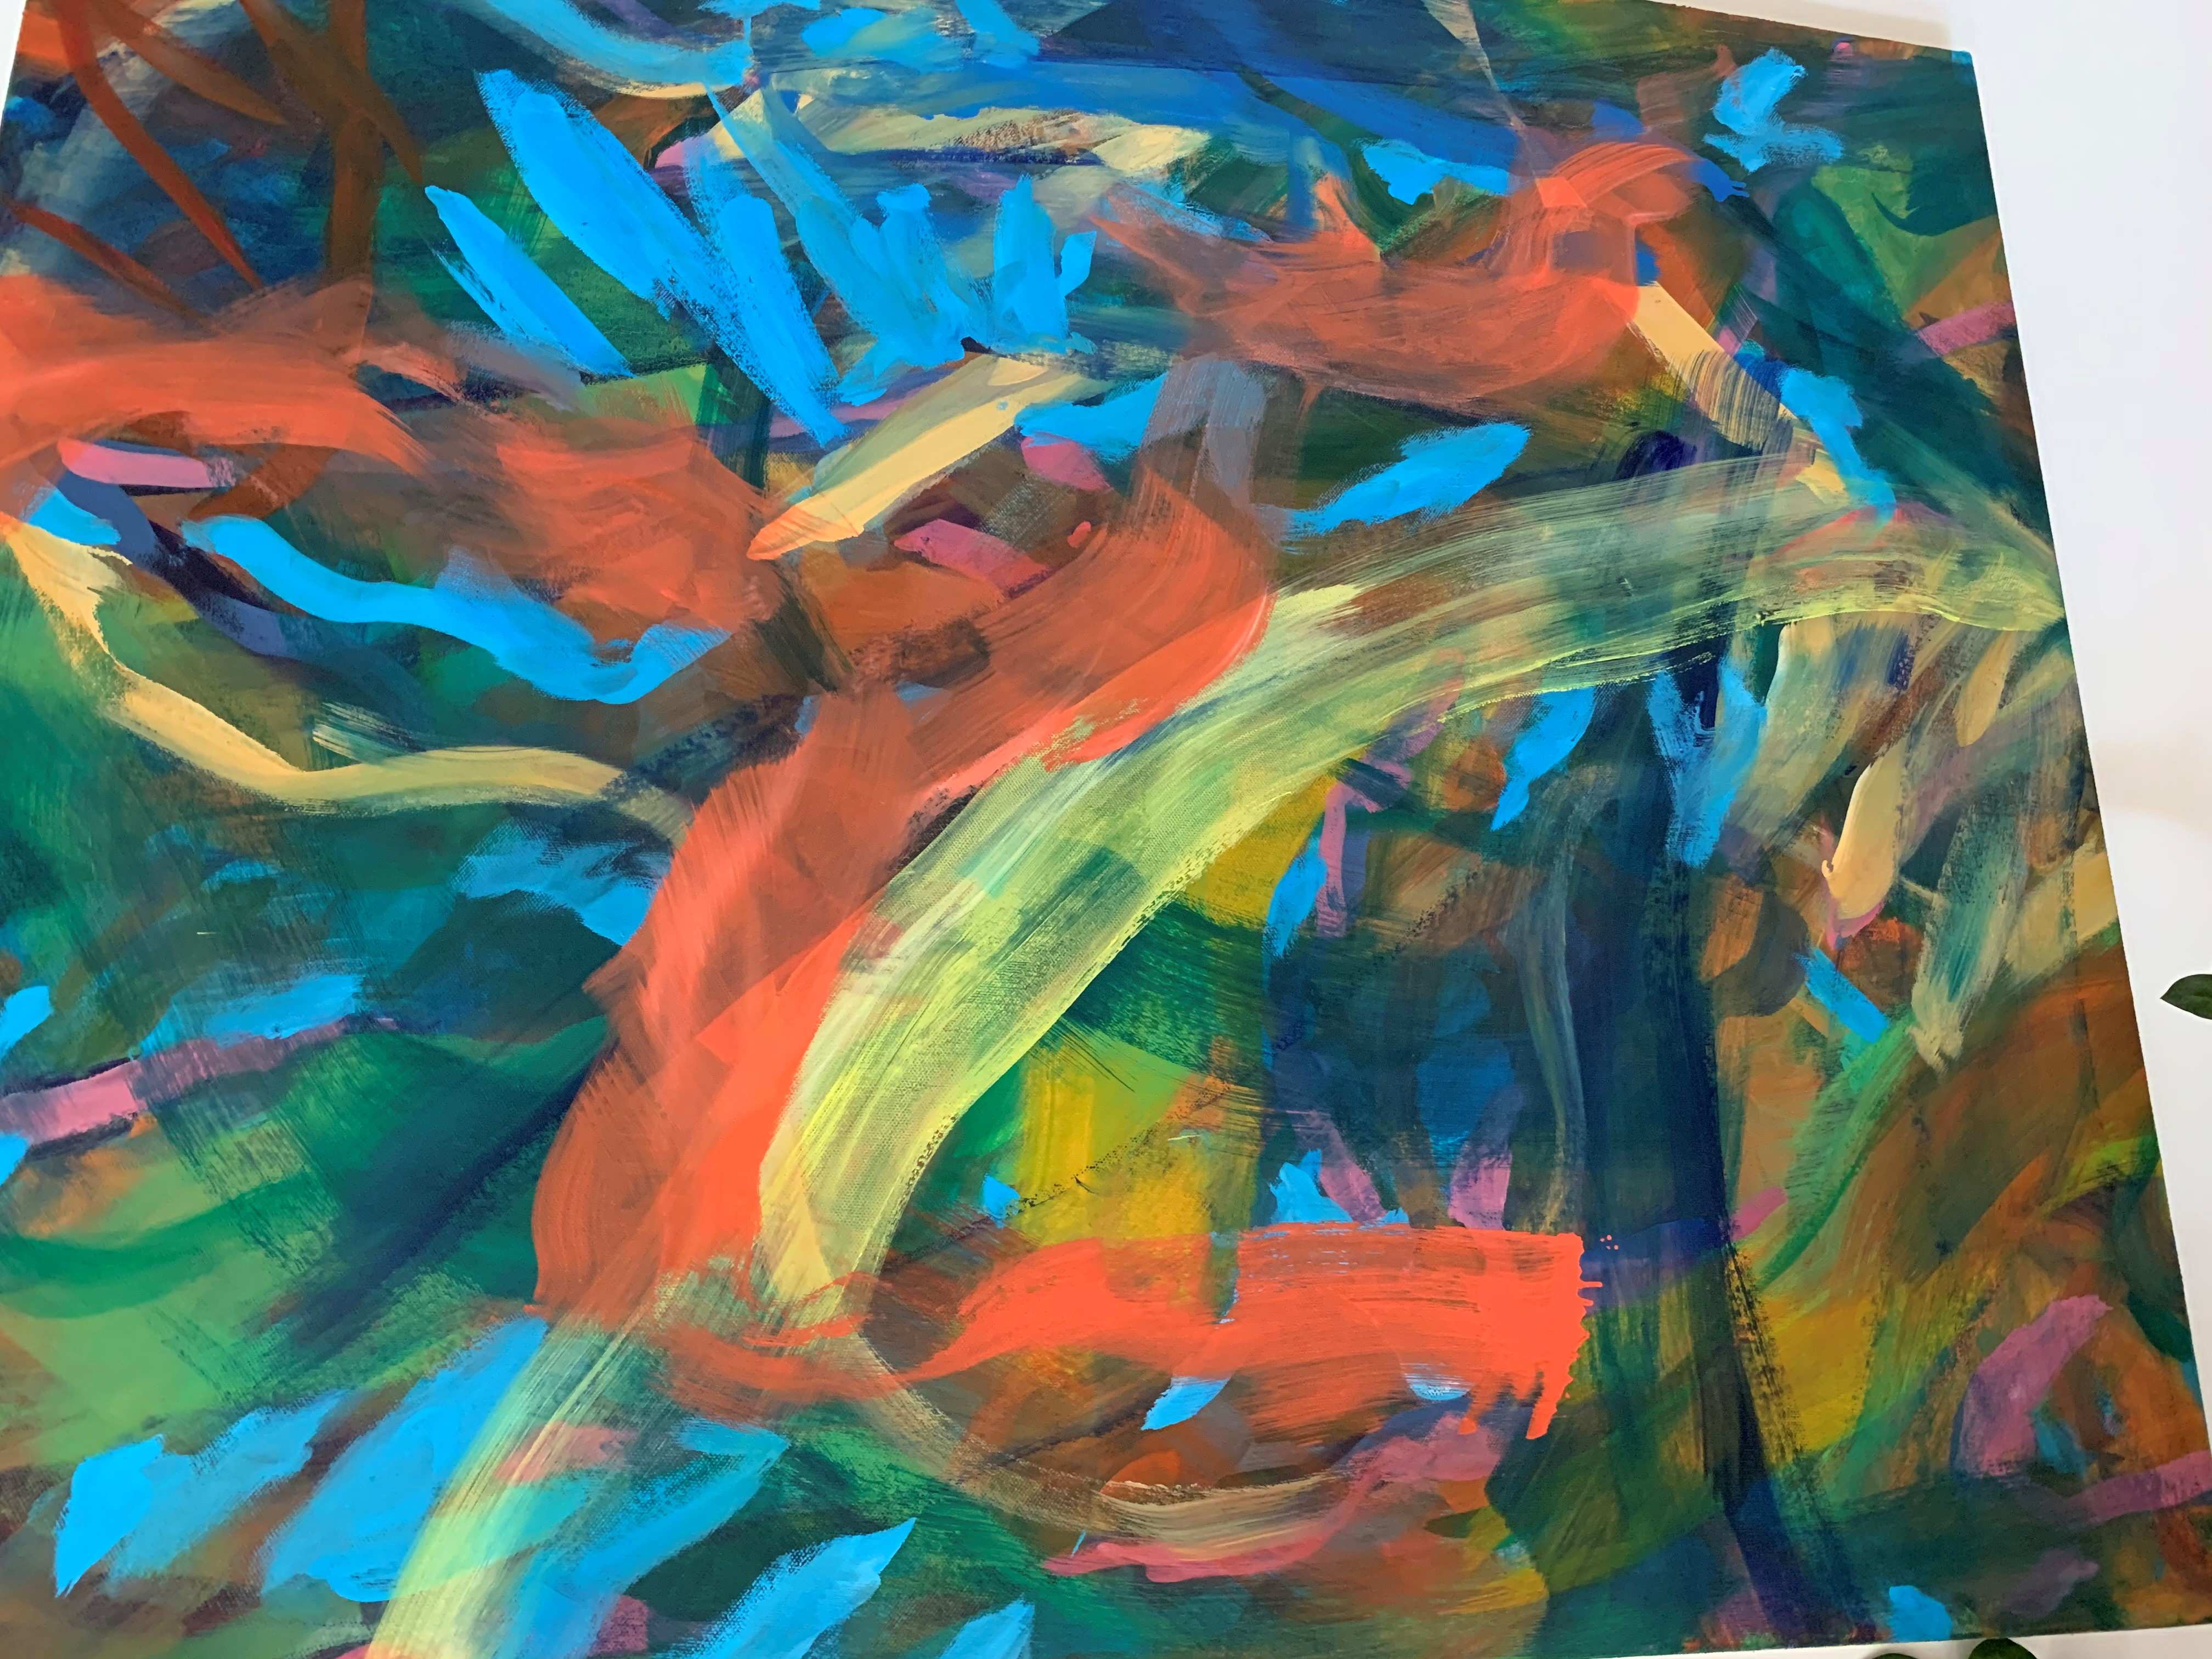 Untitled 2 artwork by Thomas Sauter - art listed for sale on Artplode